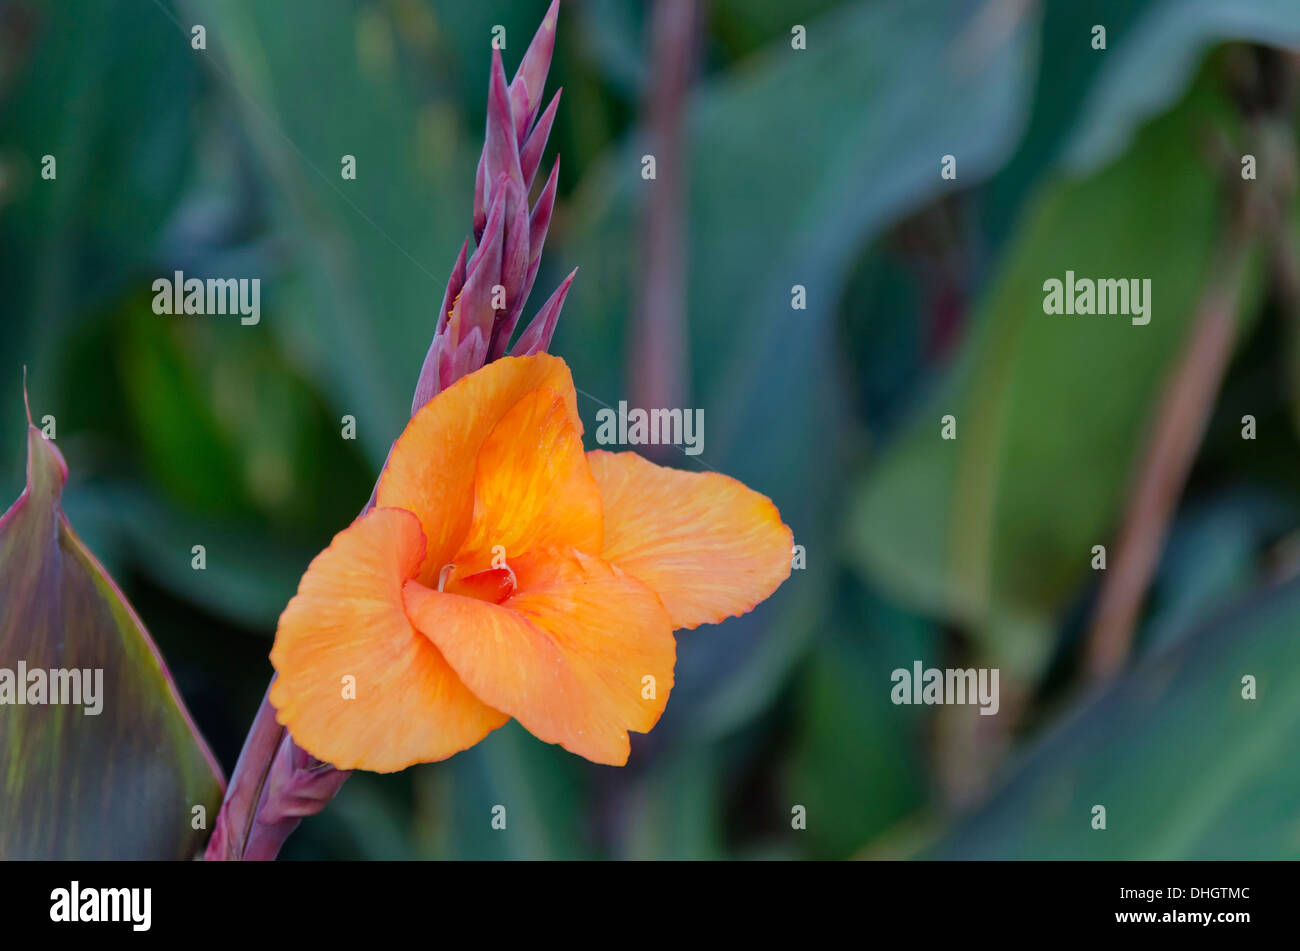 Radiant Canna Lily Blossom in garden - Stock Image